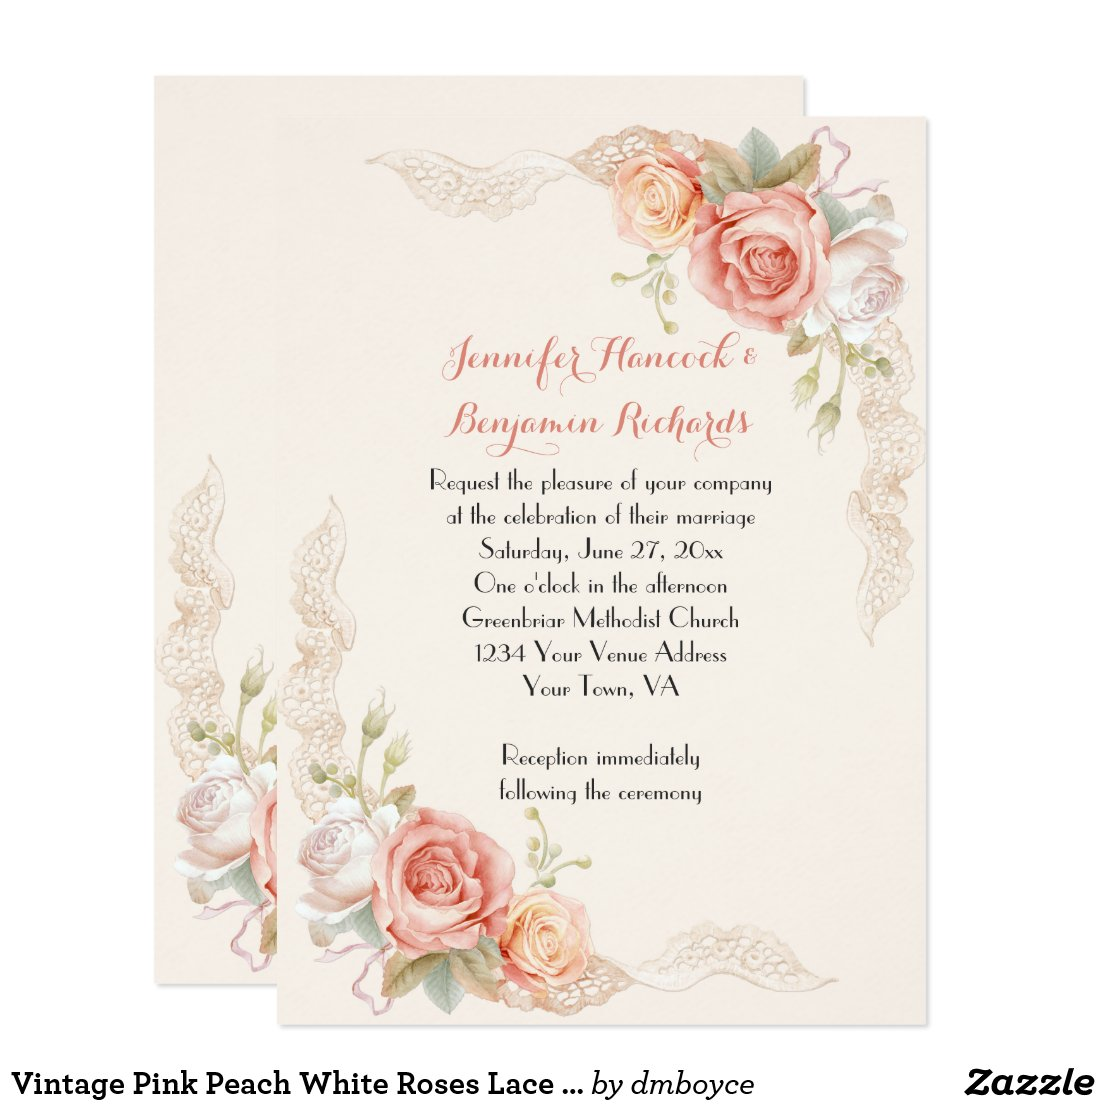 Vintage Pink Peach White Roses Lace Wedding Invite